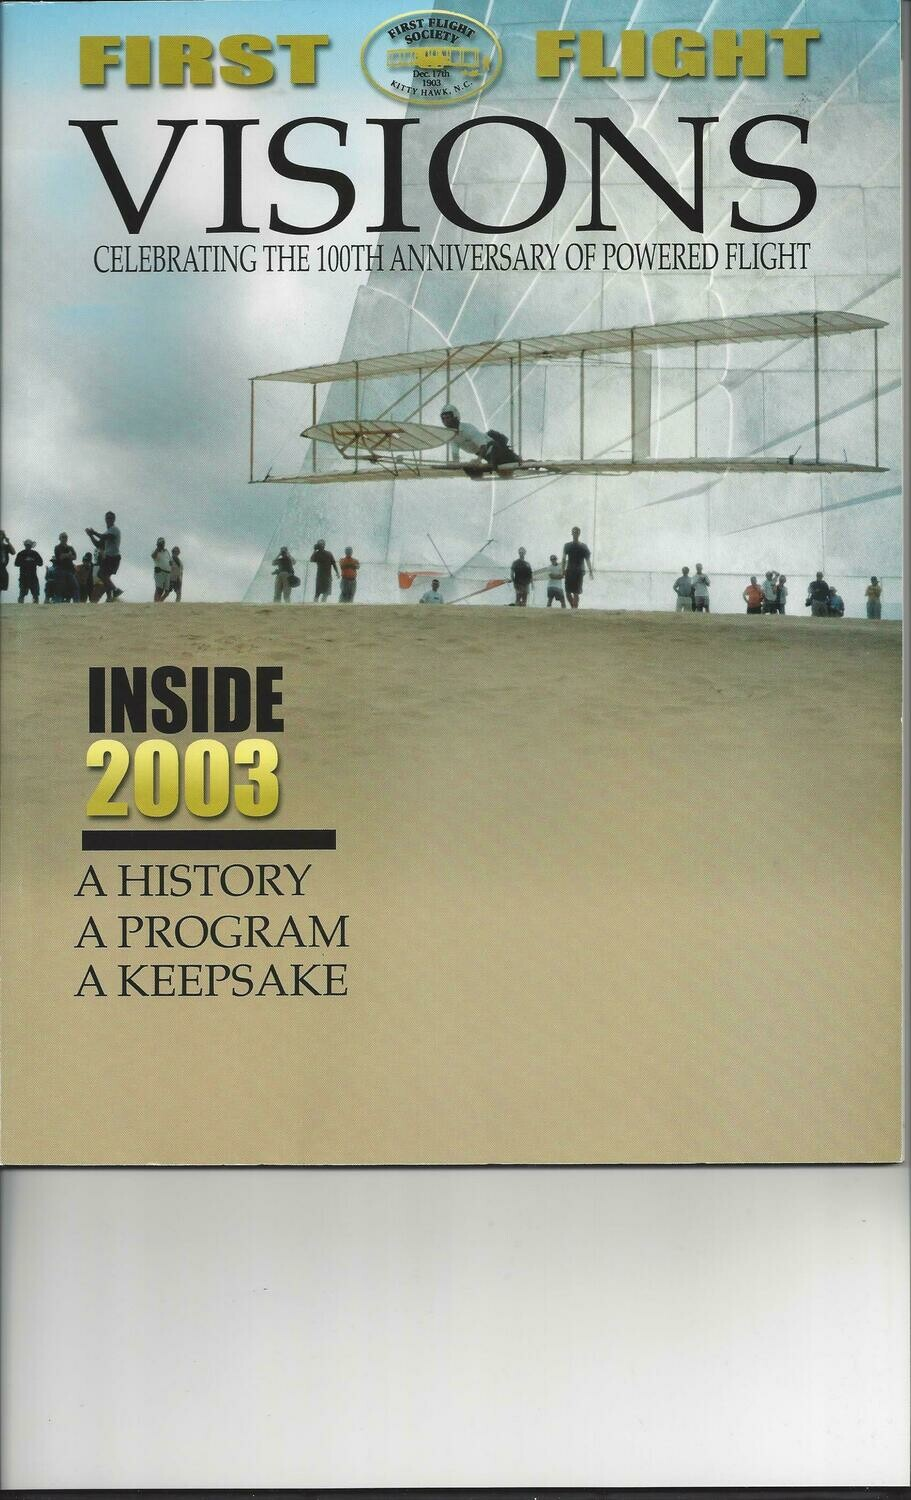 Wright Brothers Centennial Program